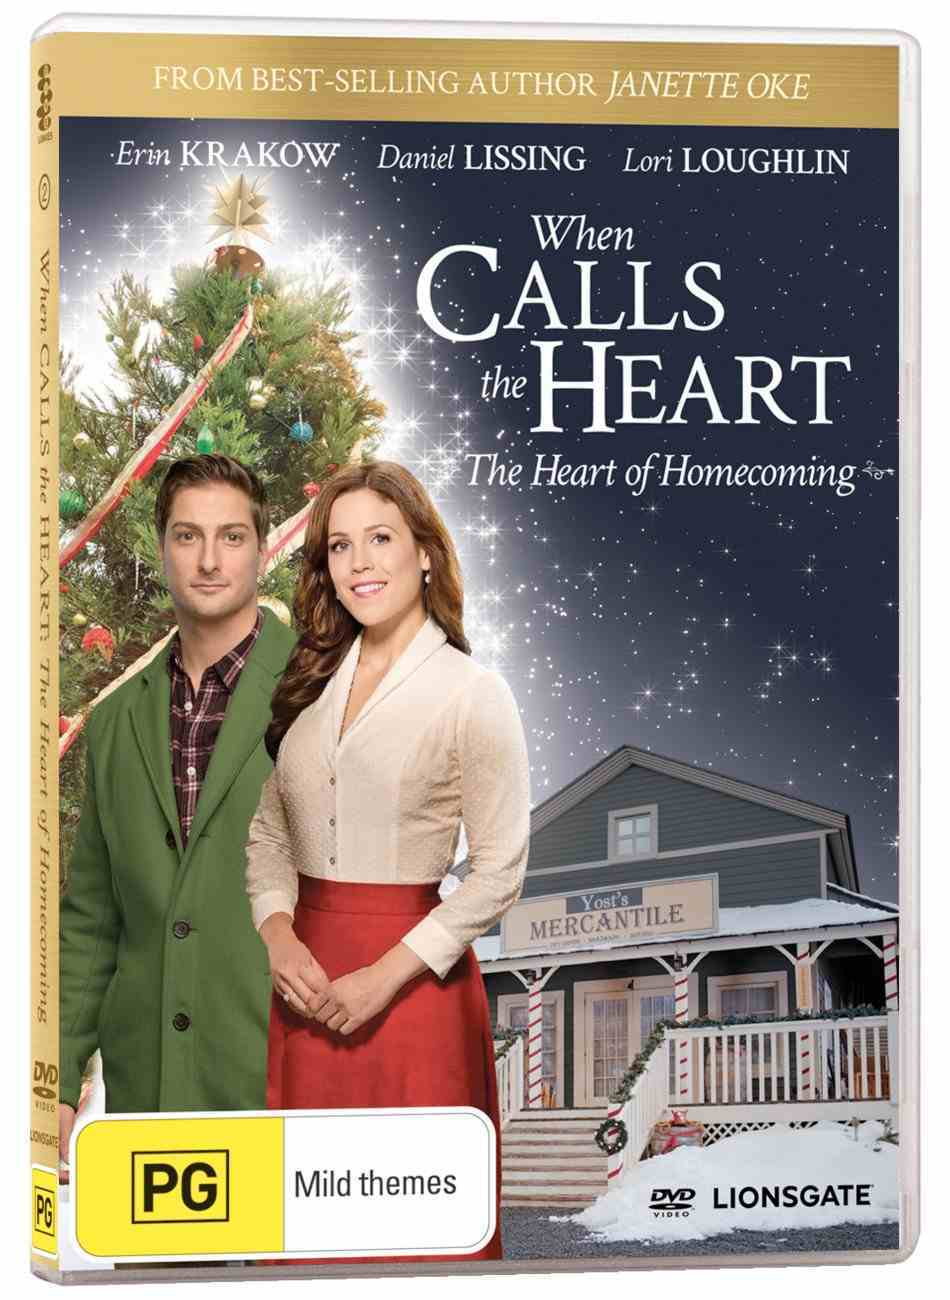 When Calls the Heart #24: The Heart of Homecoming (Christmas Movie) DVD